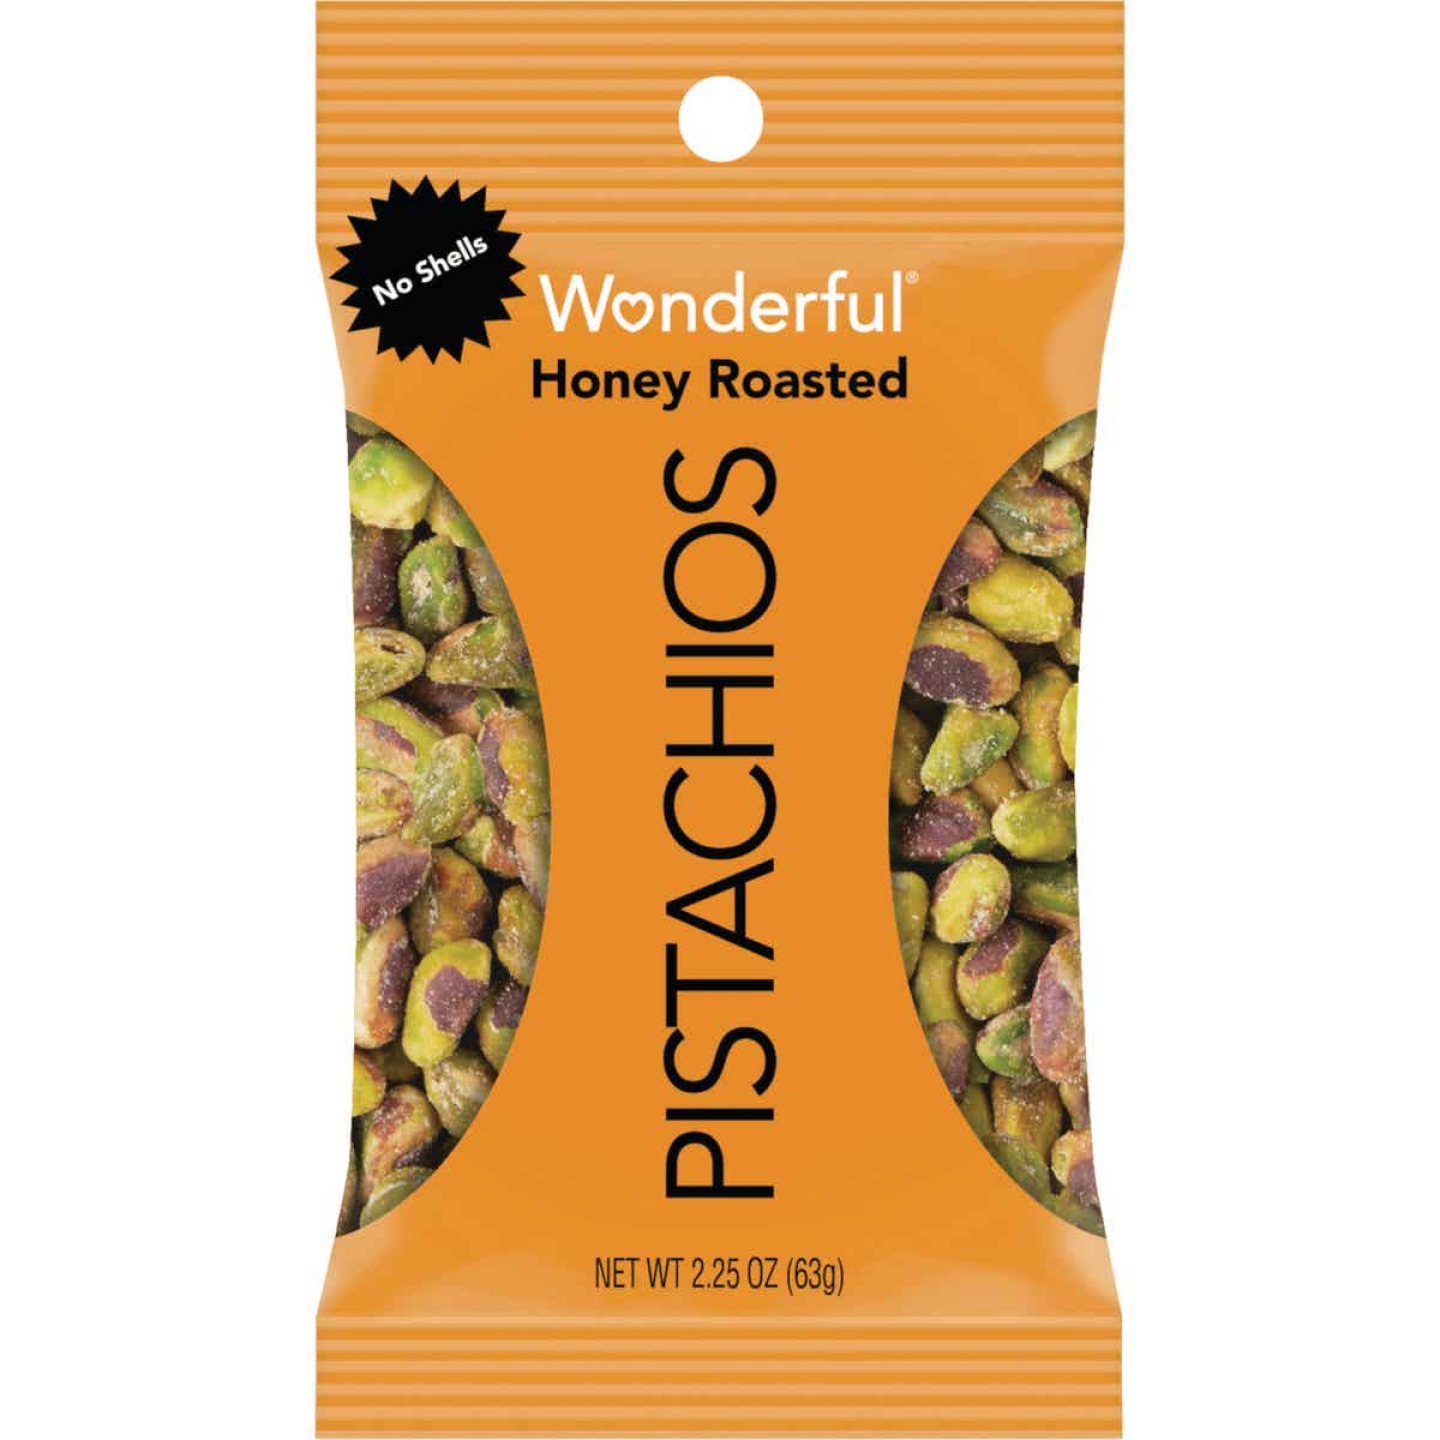 Wonderful 2.25 Oz. Honey Roasted Shelled Pistachios Image 1